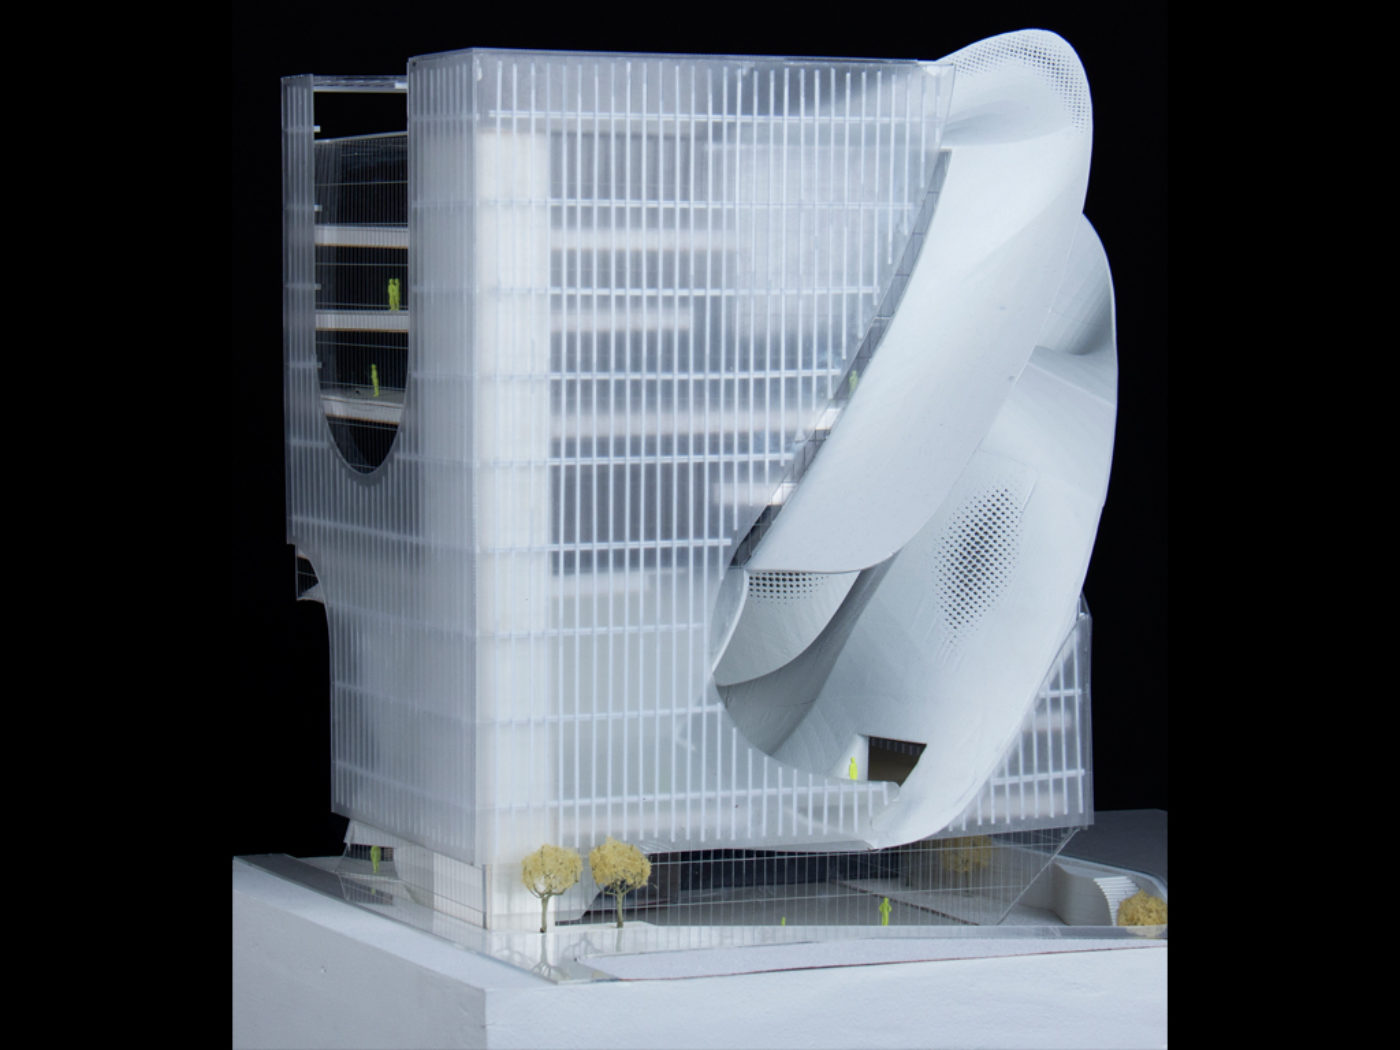 transparent white and reflective model by architecture student